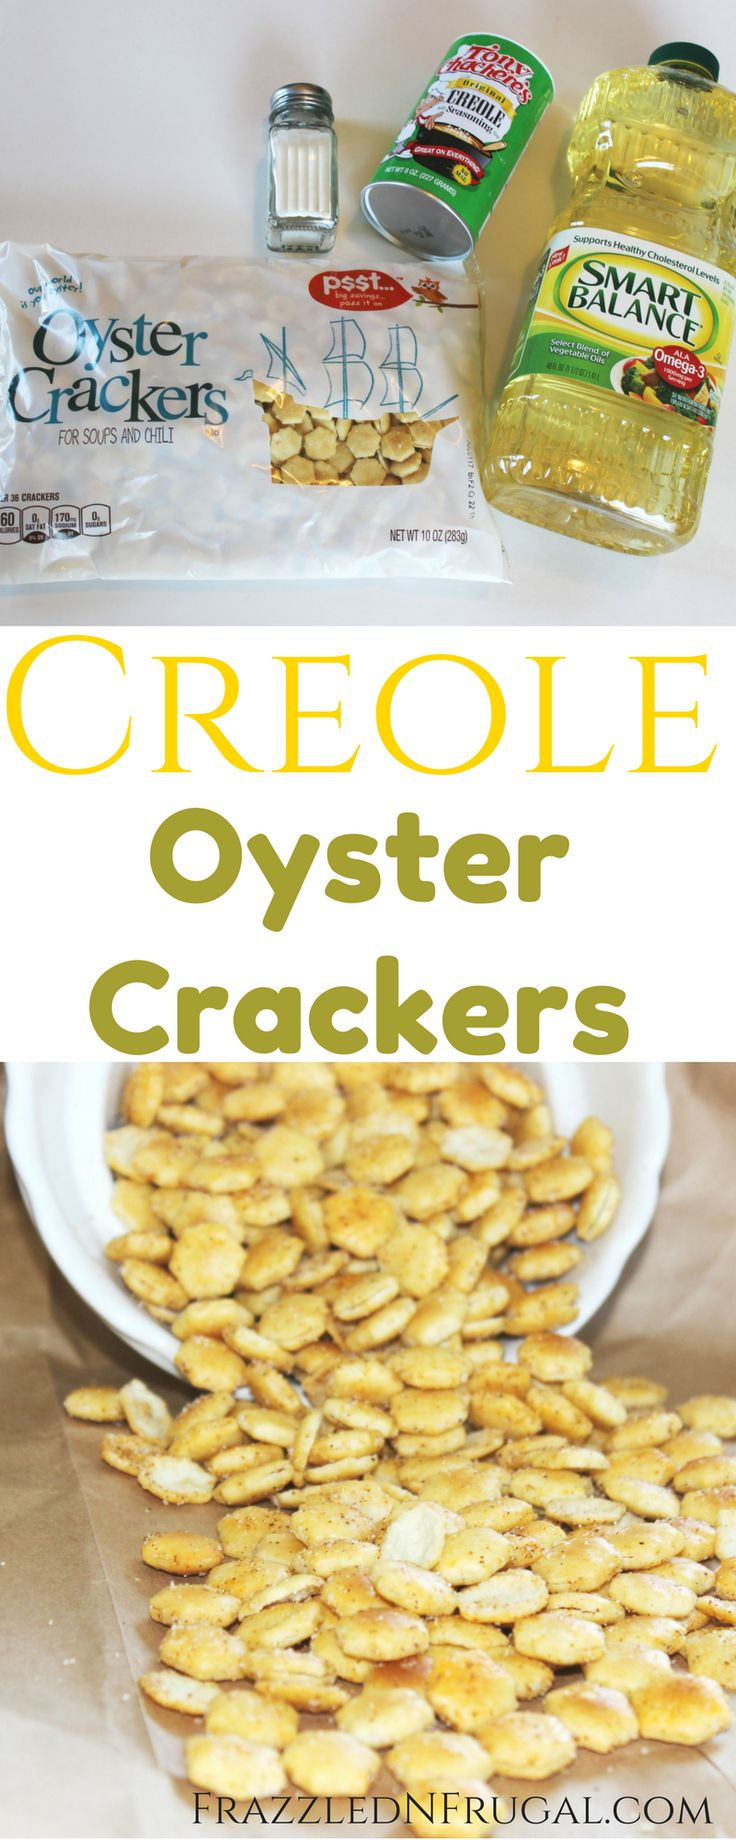 Creole Seasoned Oyster Crackers Recipe - This easy to make snack is perfect for game day, Mardi Gras celebration, parties or road trips!